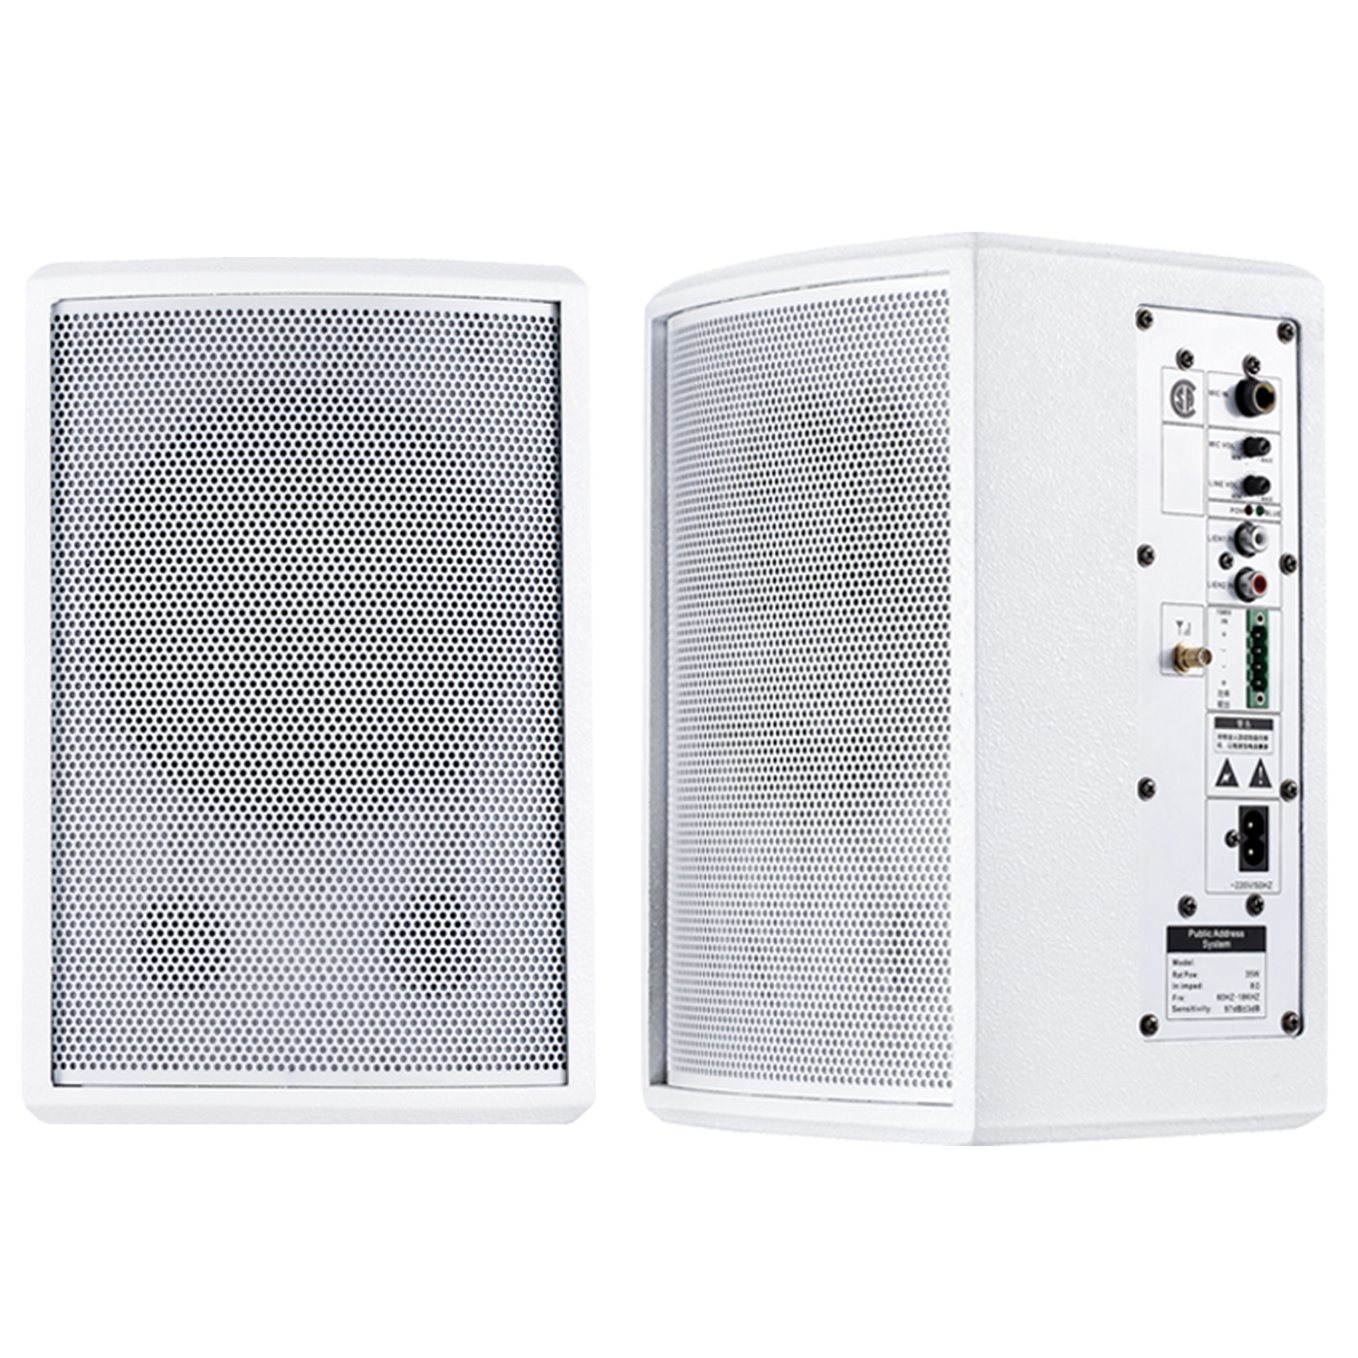 IP Network Active Speaker Se-40wh, Se-40wg